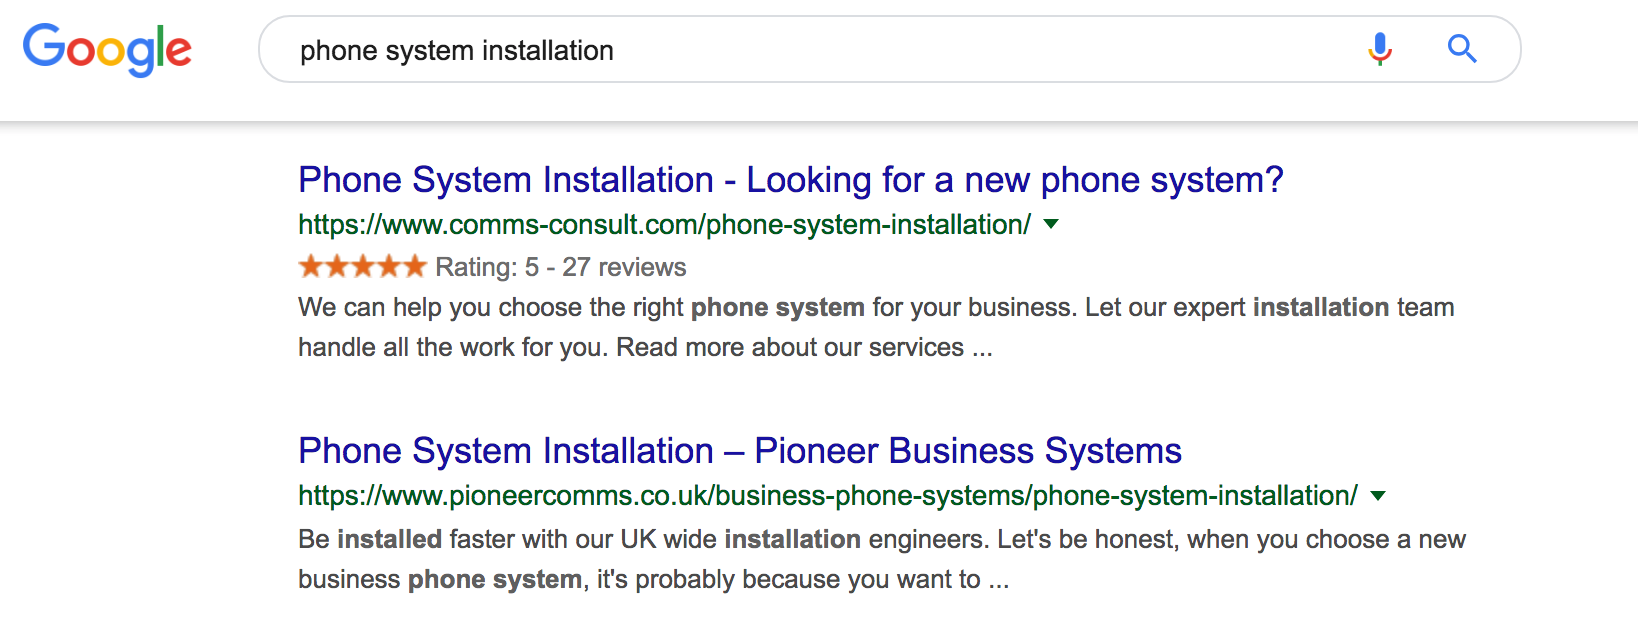 Company Gold stars in action, rich snippets for reviews